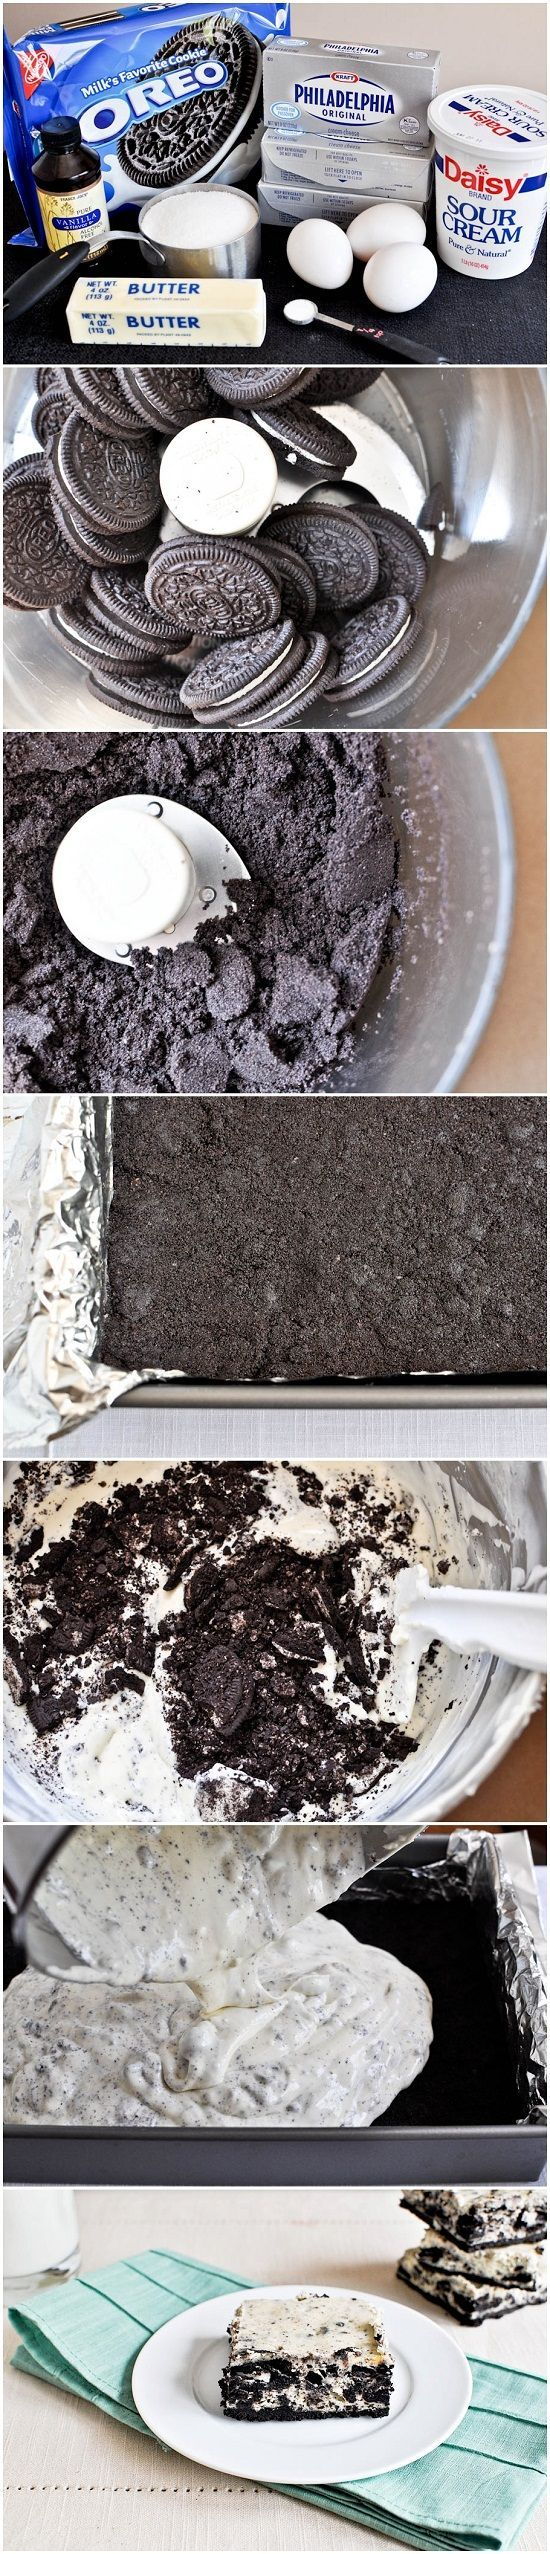 Cookies and Cream Cheesecake #Decorated Cookies| http ...